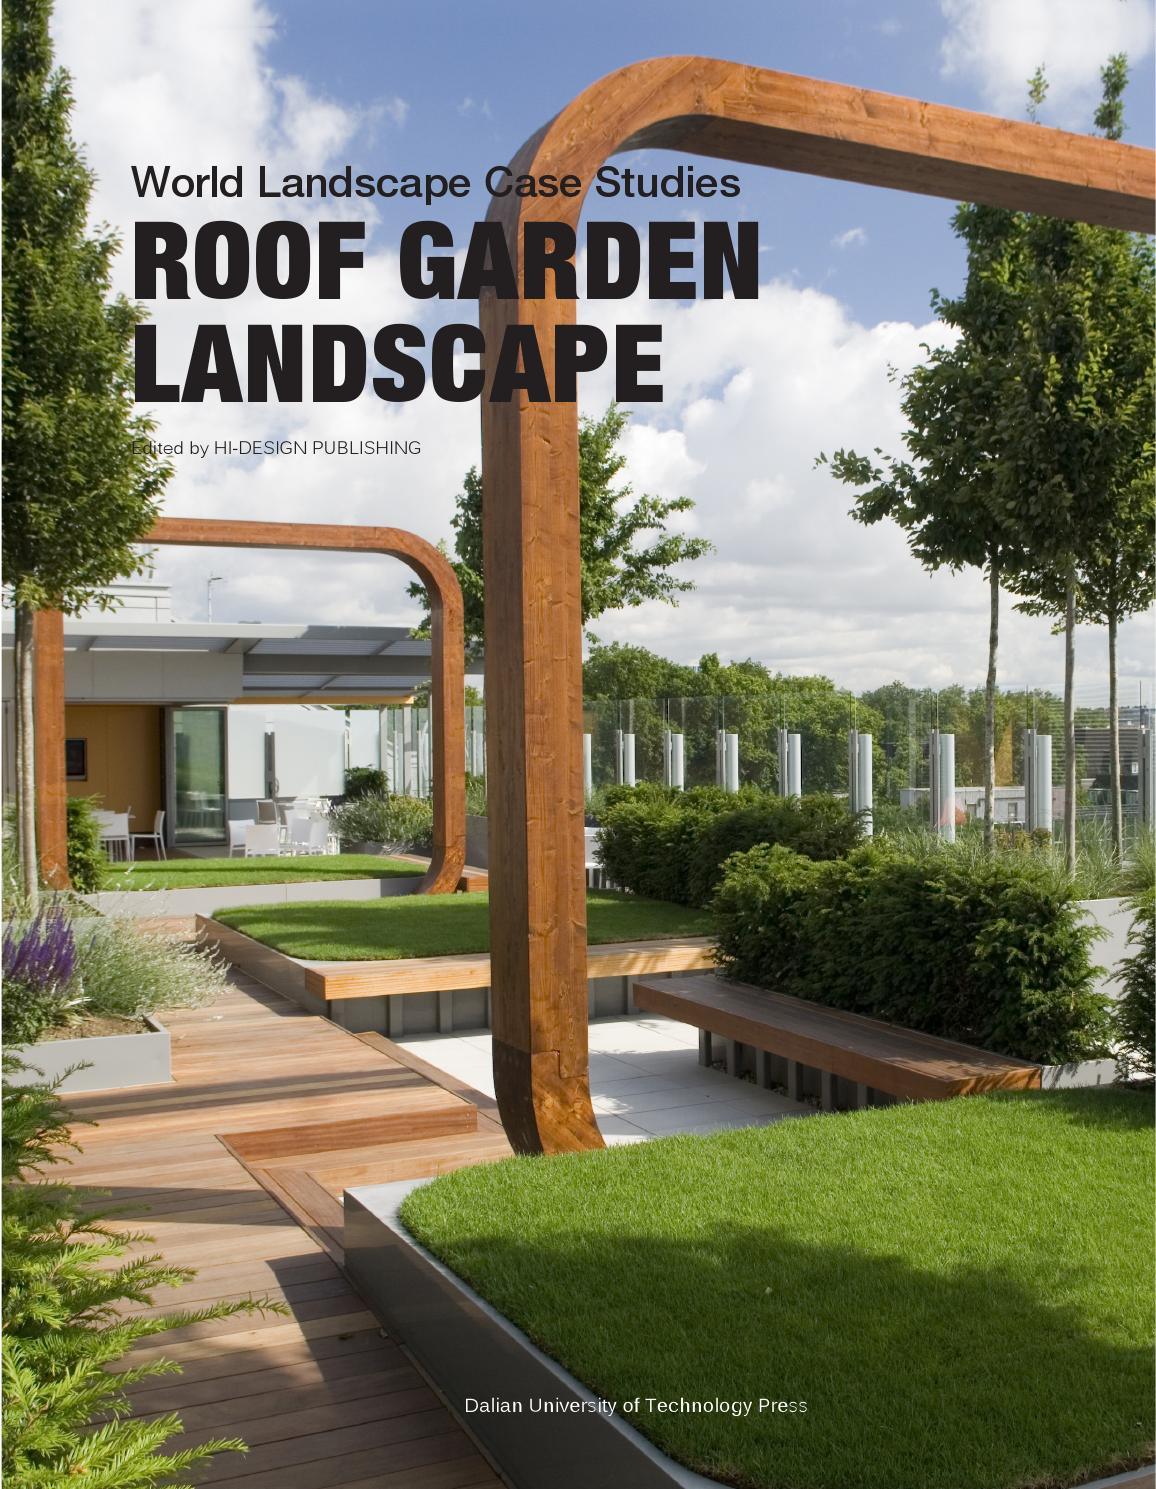 Roof garden landscape world landscape case studies by hi for Garden design university